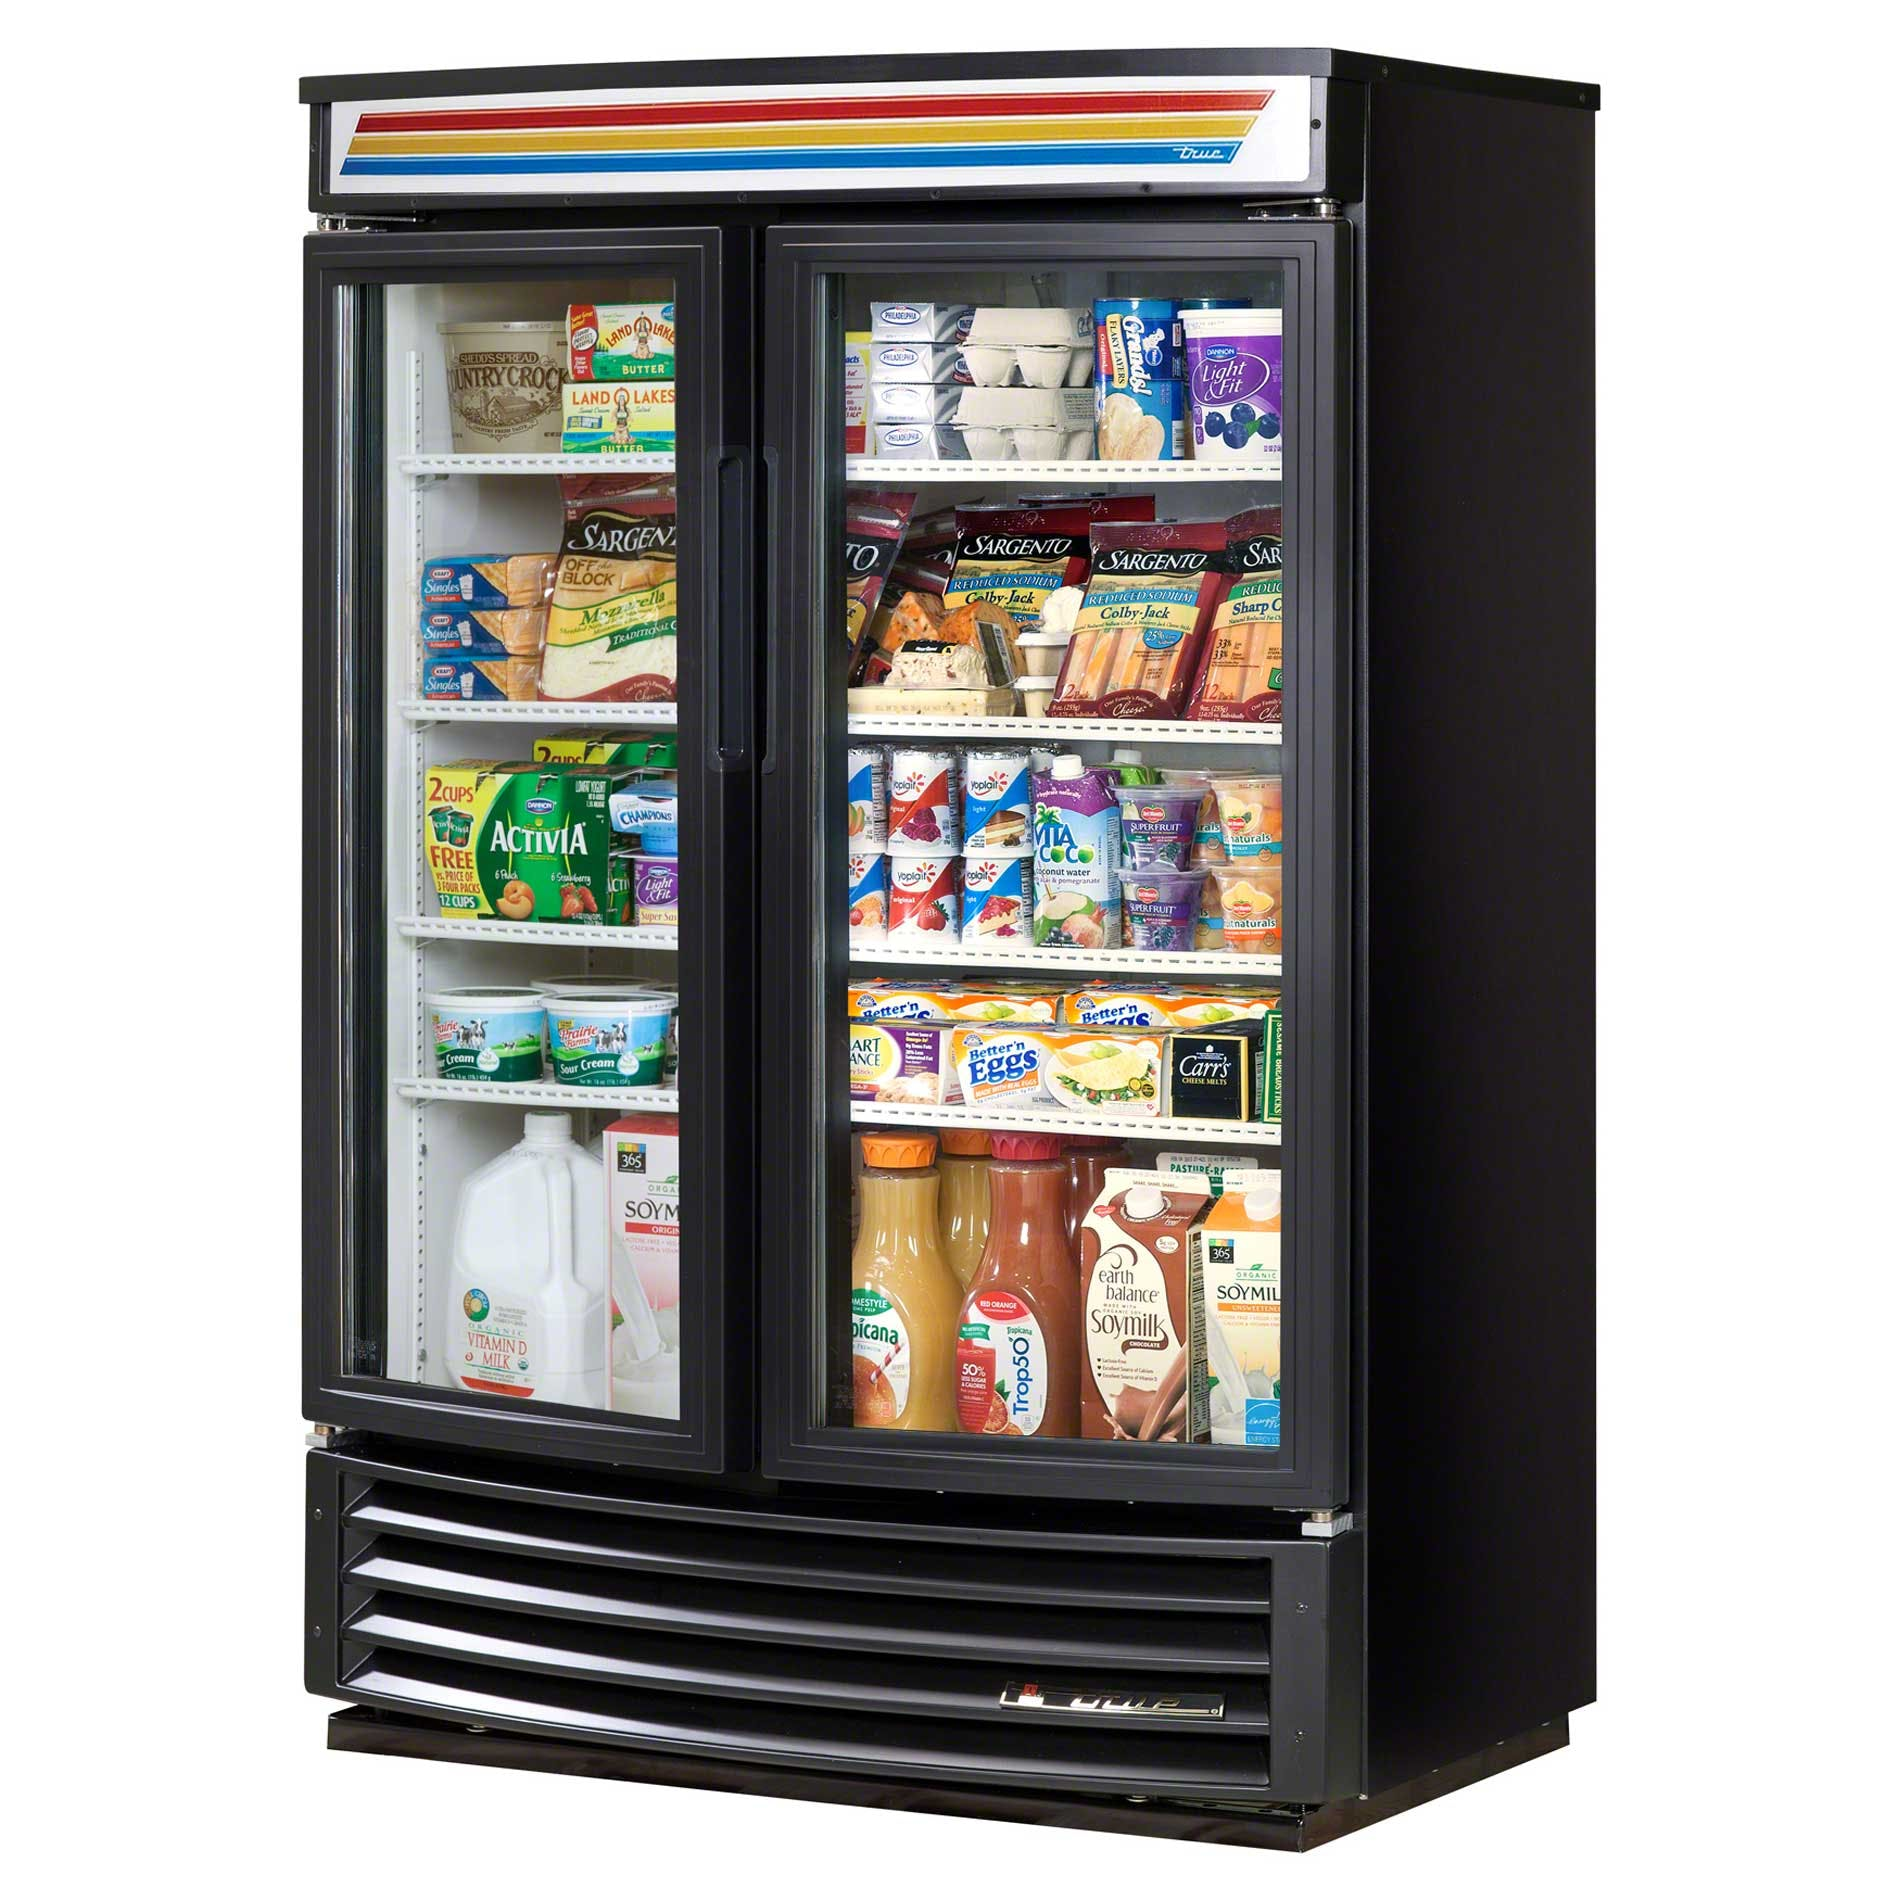 "True - GDM-35SL-RF-LD 40"" Radius Front Glass Door Merchandiser Refrigerator LED Commercial refrigerator sold by Food Service Warehouse"